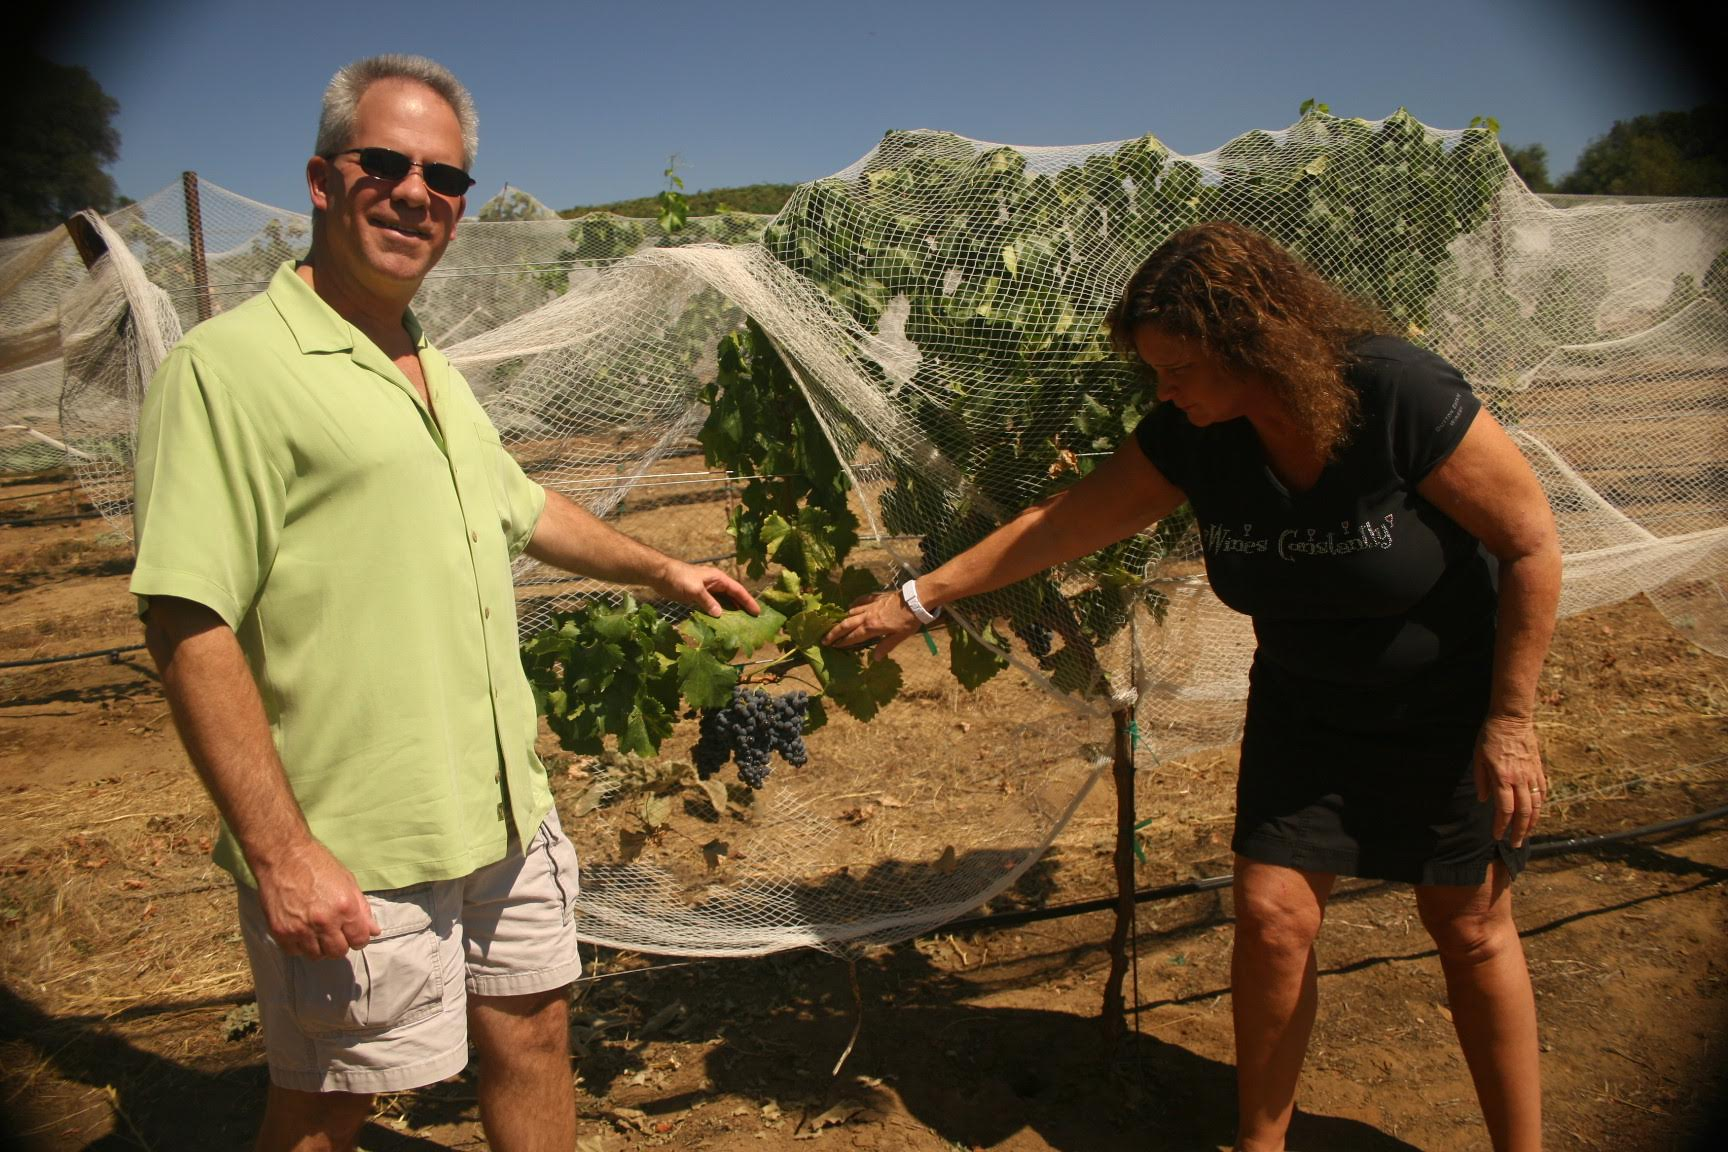 Jim and Sue, Protecting The Vines